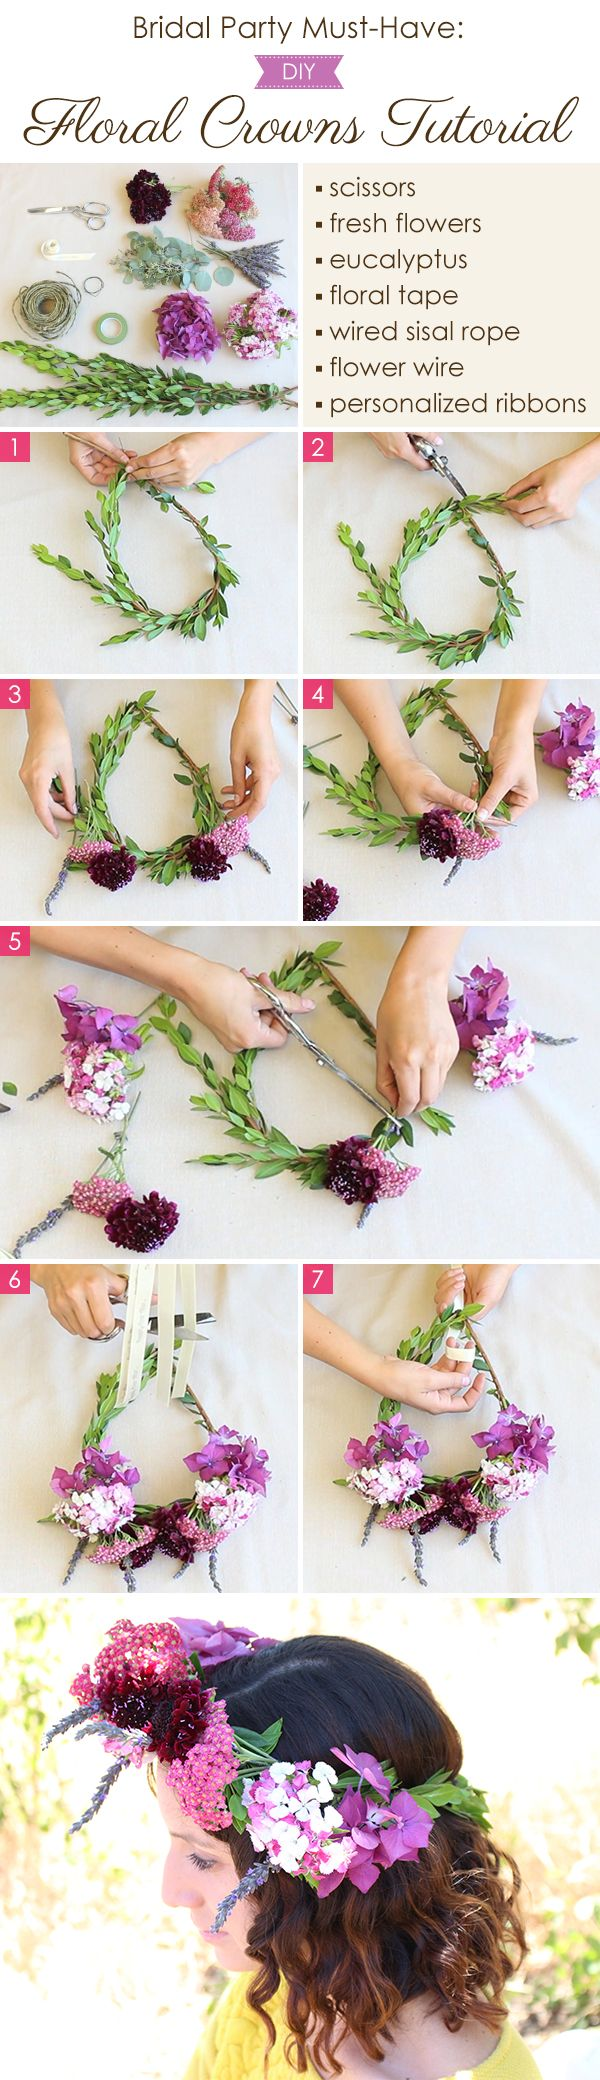 Bridal party must have diy flower crowns tutorial by home sweet bridal party must have diy flower crowns tutorial by home sweet flowers izmirmasajfo